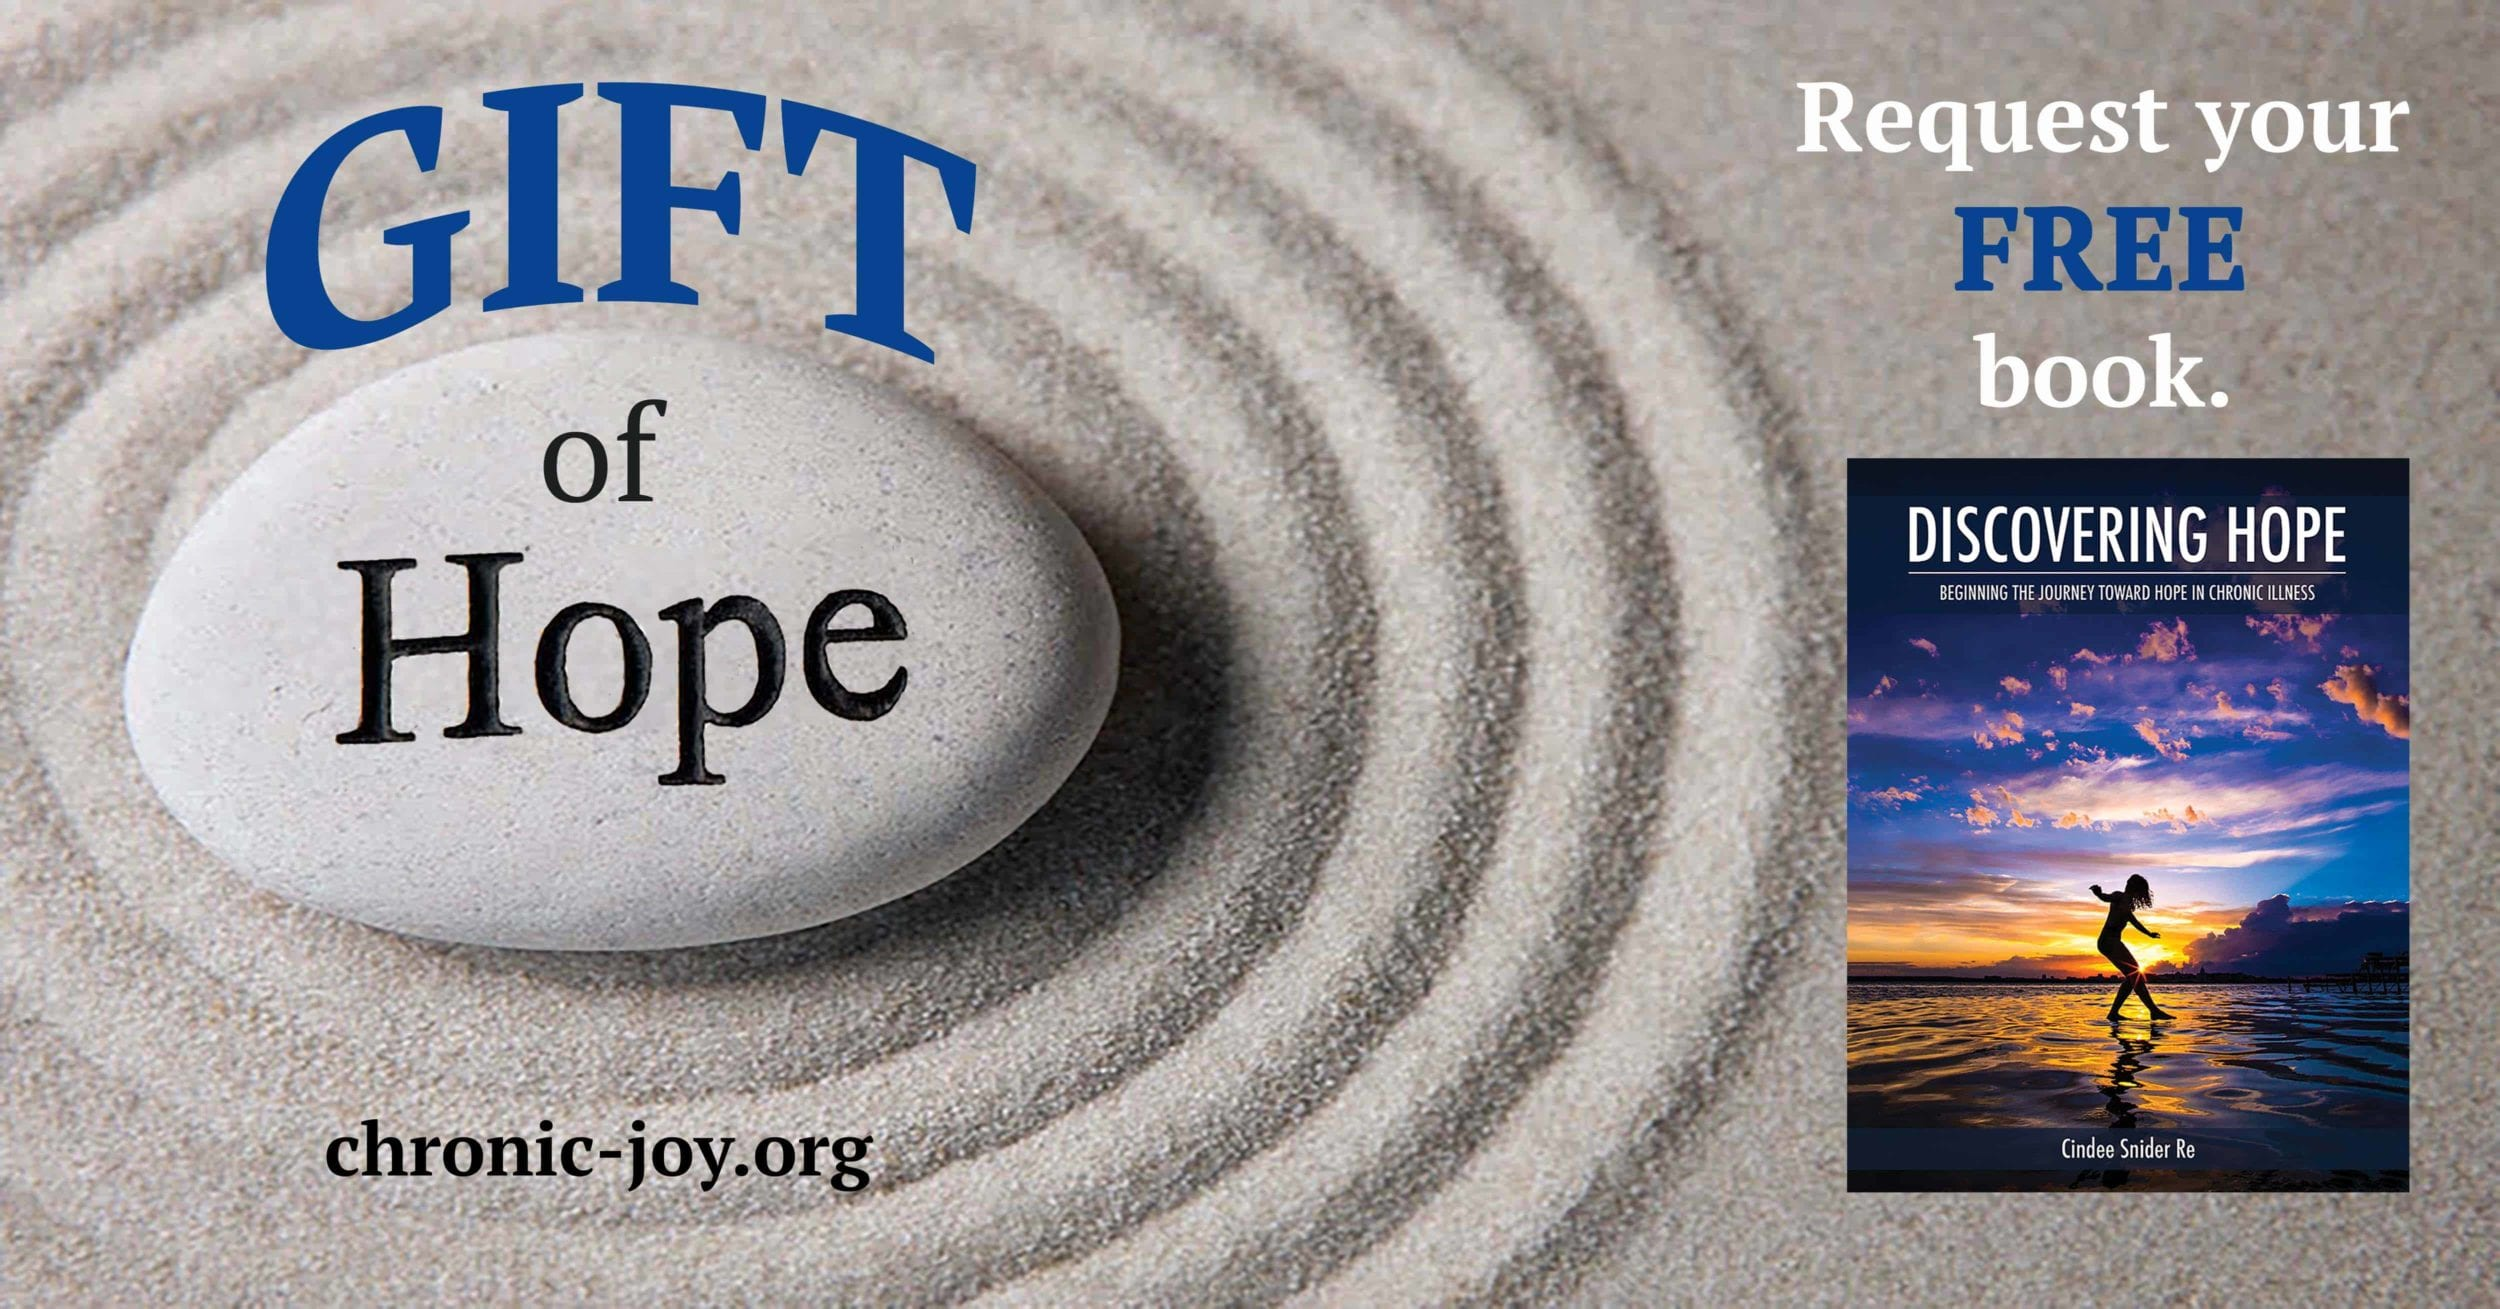 Gift of Hope - Free Book